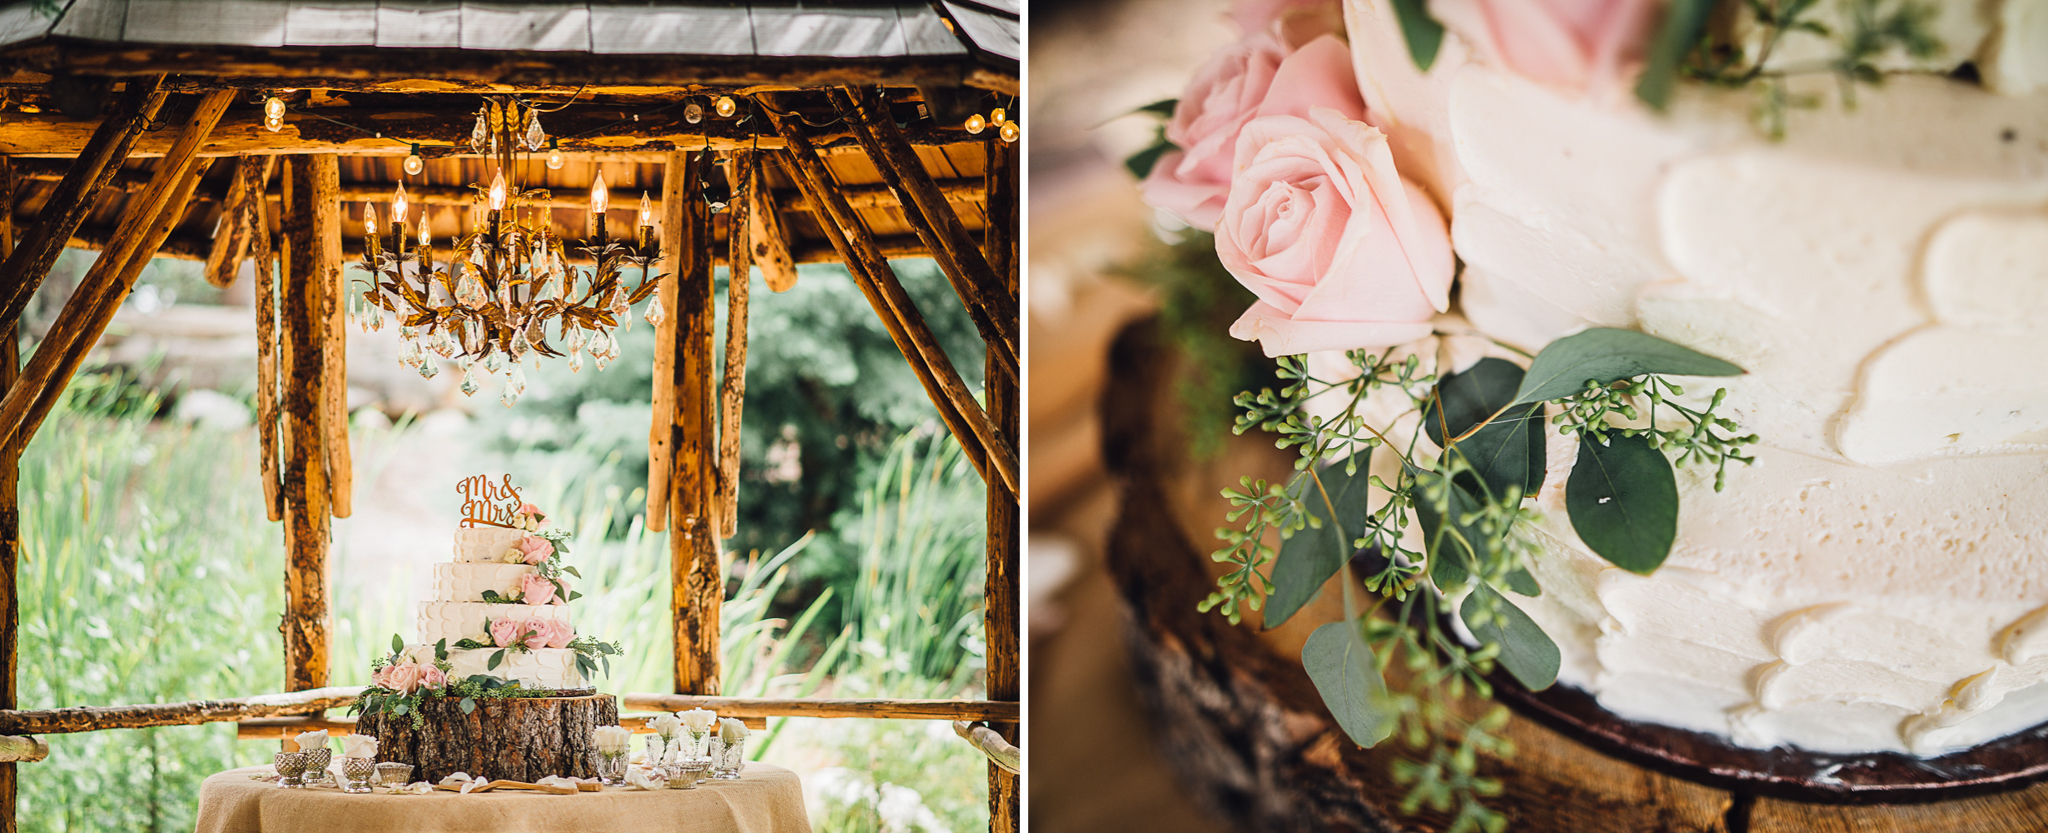 ©Isaiah & Taylor Photography - Pine Rose Cabin - Lake Arrowhead - Los Angeles Wedding Photographer-127.jpg